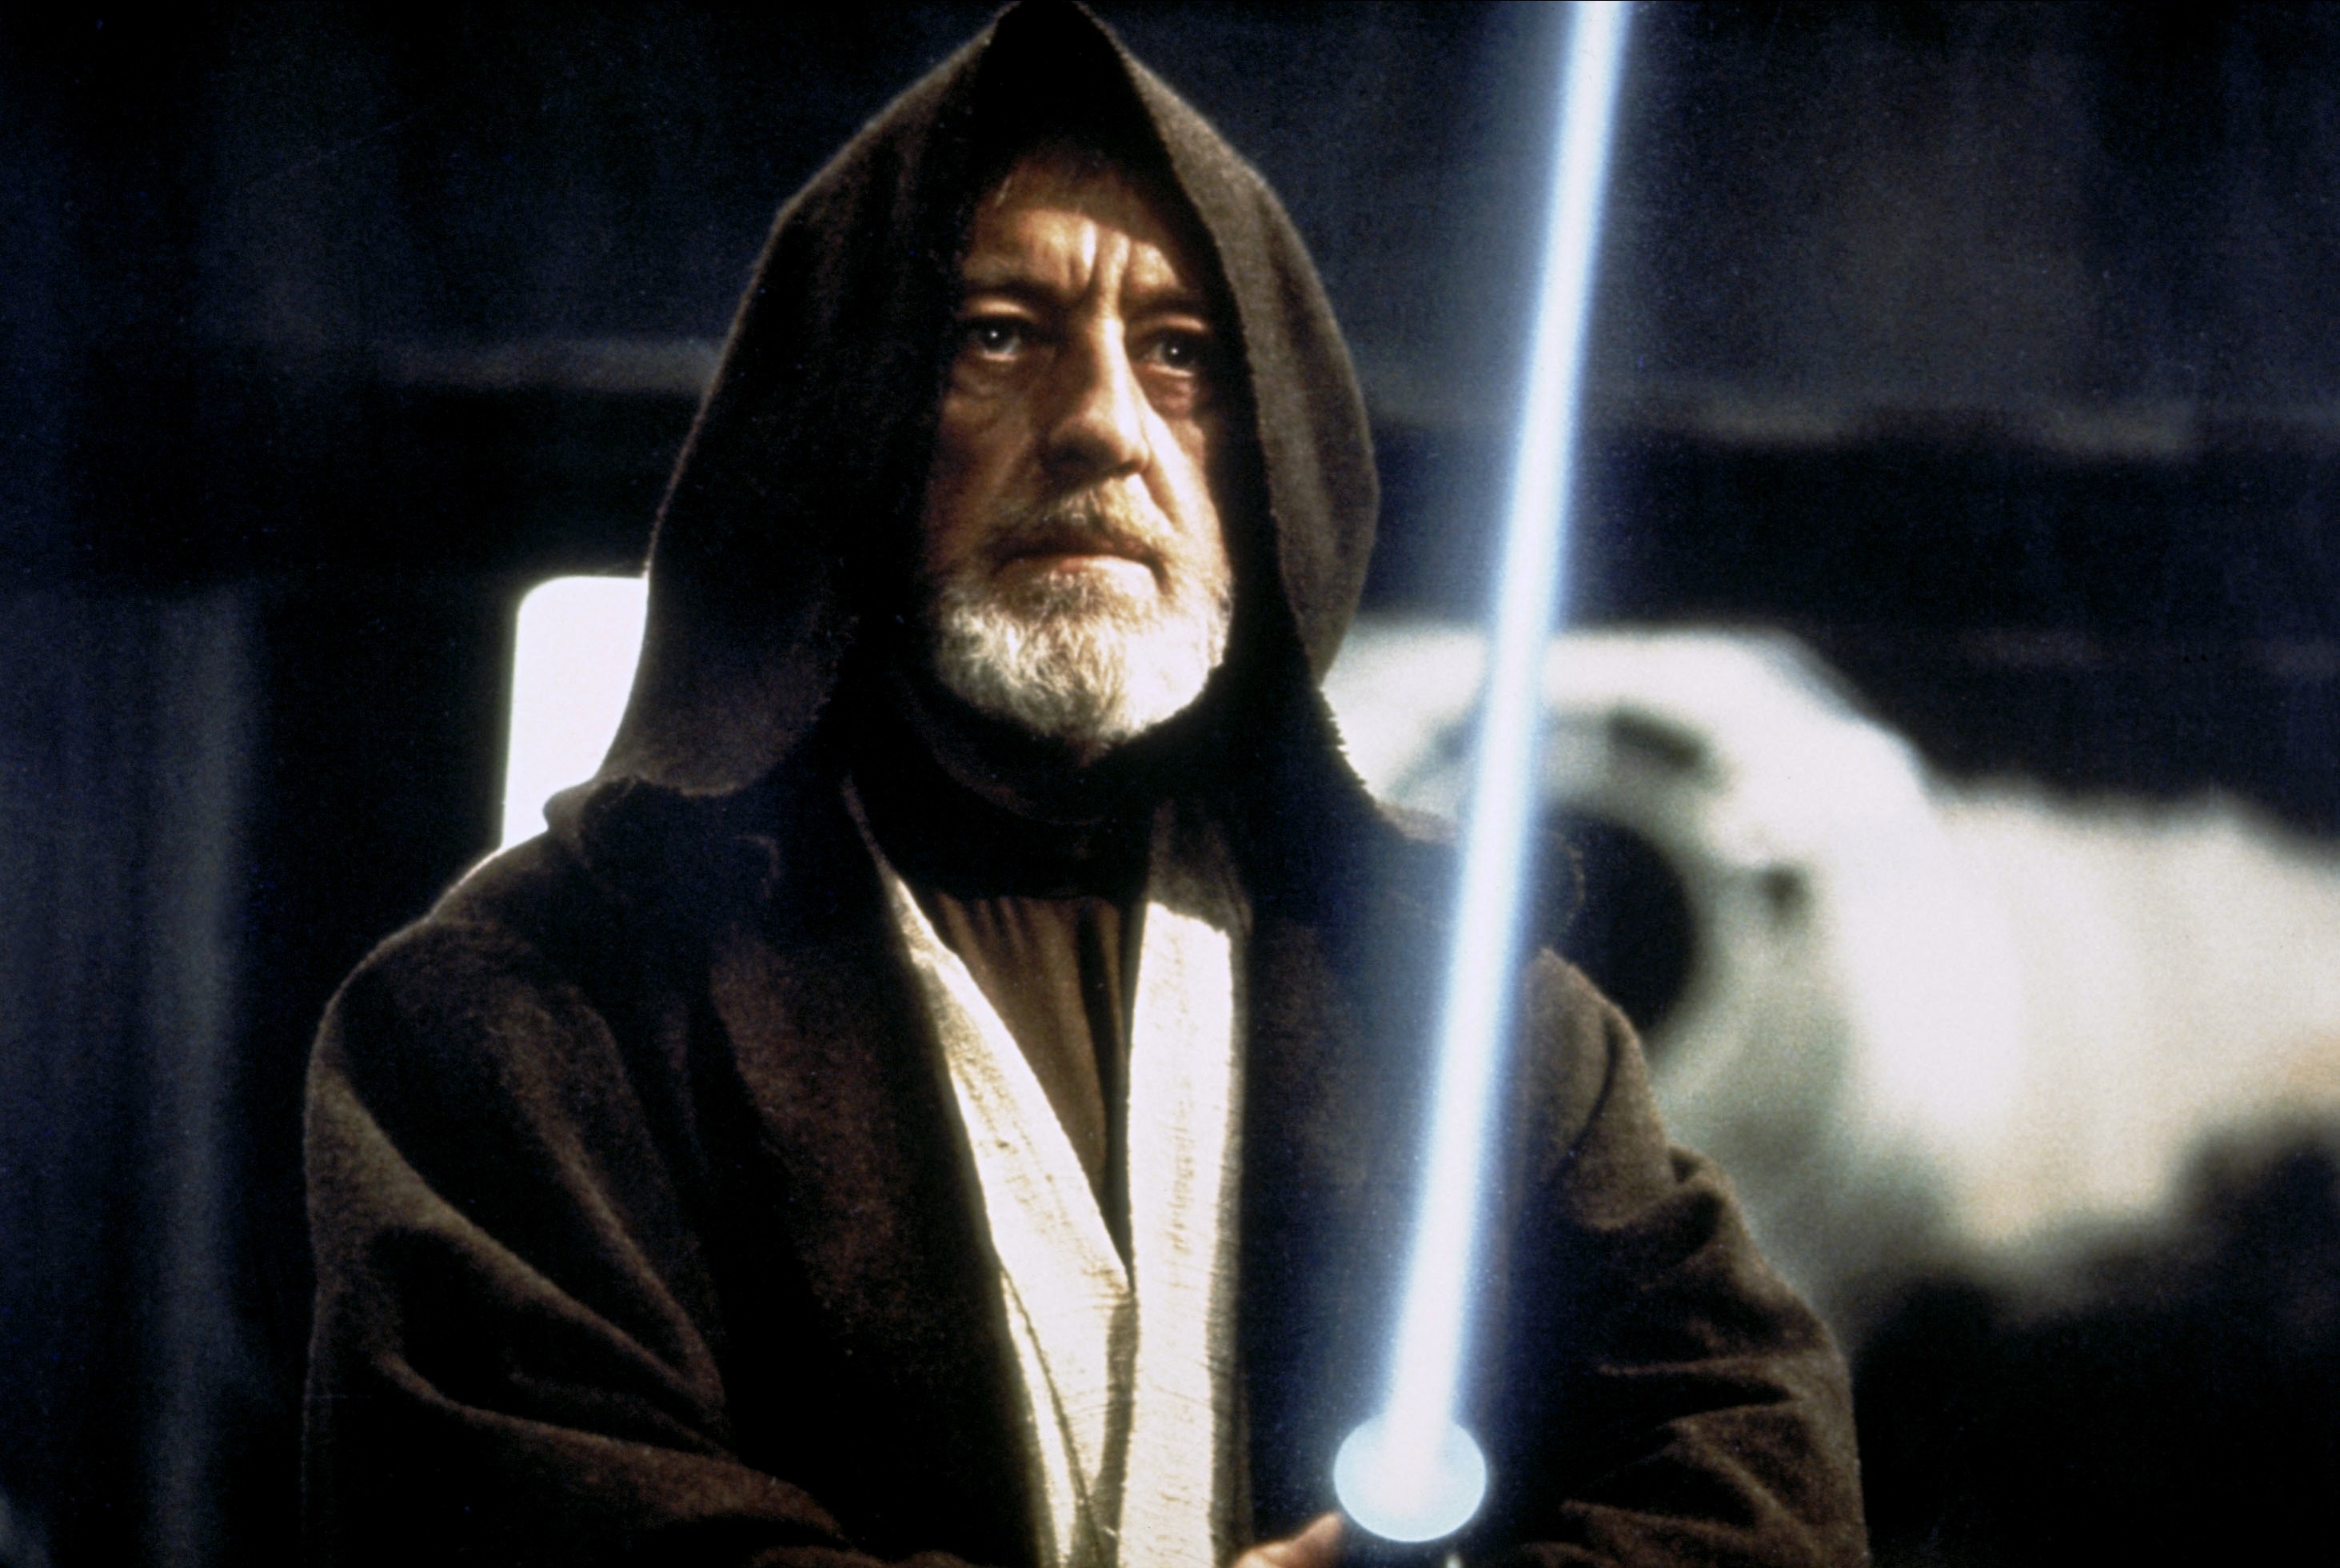 Alec Guinness: Ben Obi-Wan Kenobi  Film 'STAR WARS; STAR WARS: EPISODE IV - A NEW HOPE' (1977)  Directed By GEORGE LUCAS  25 May 1977  AFB6468  Allstar/LUCASFILM